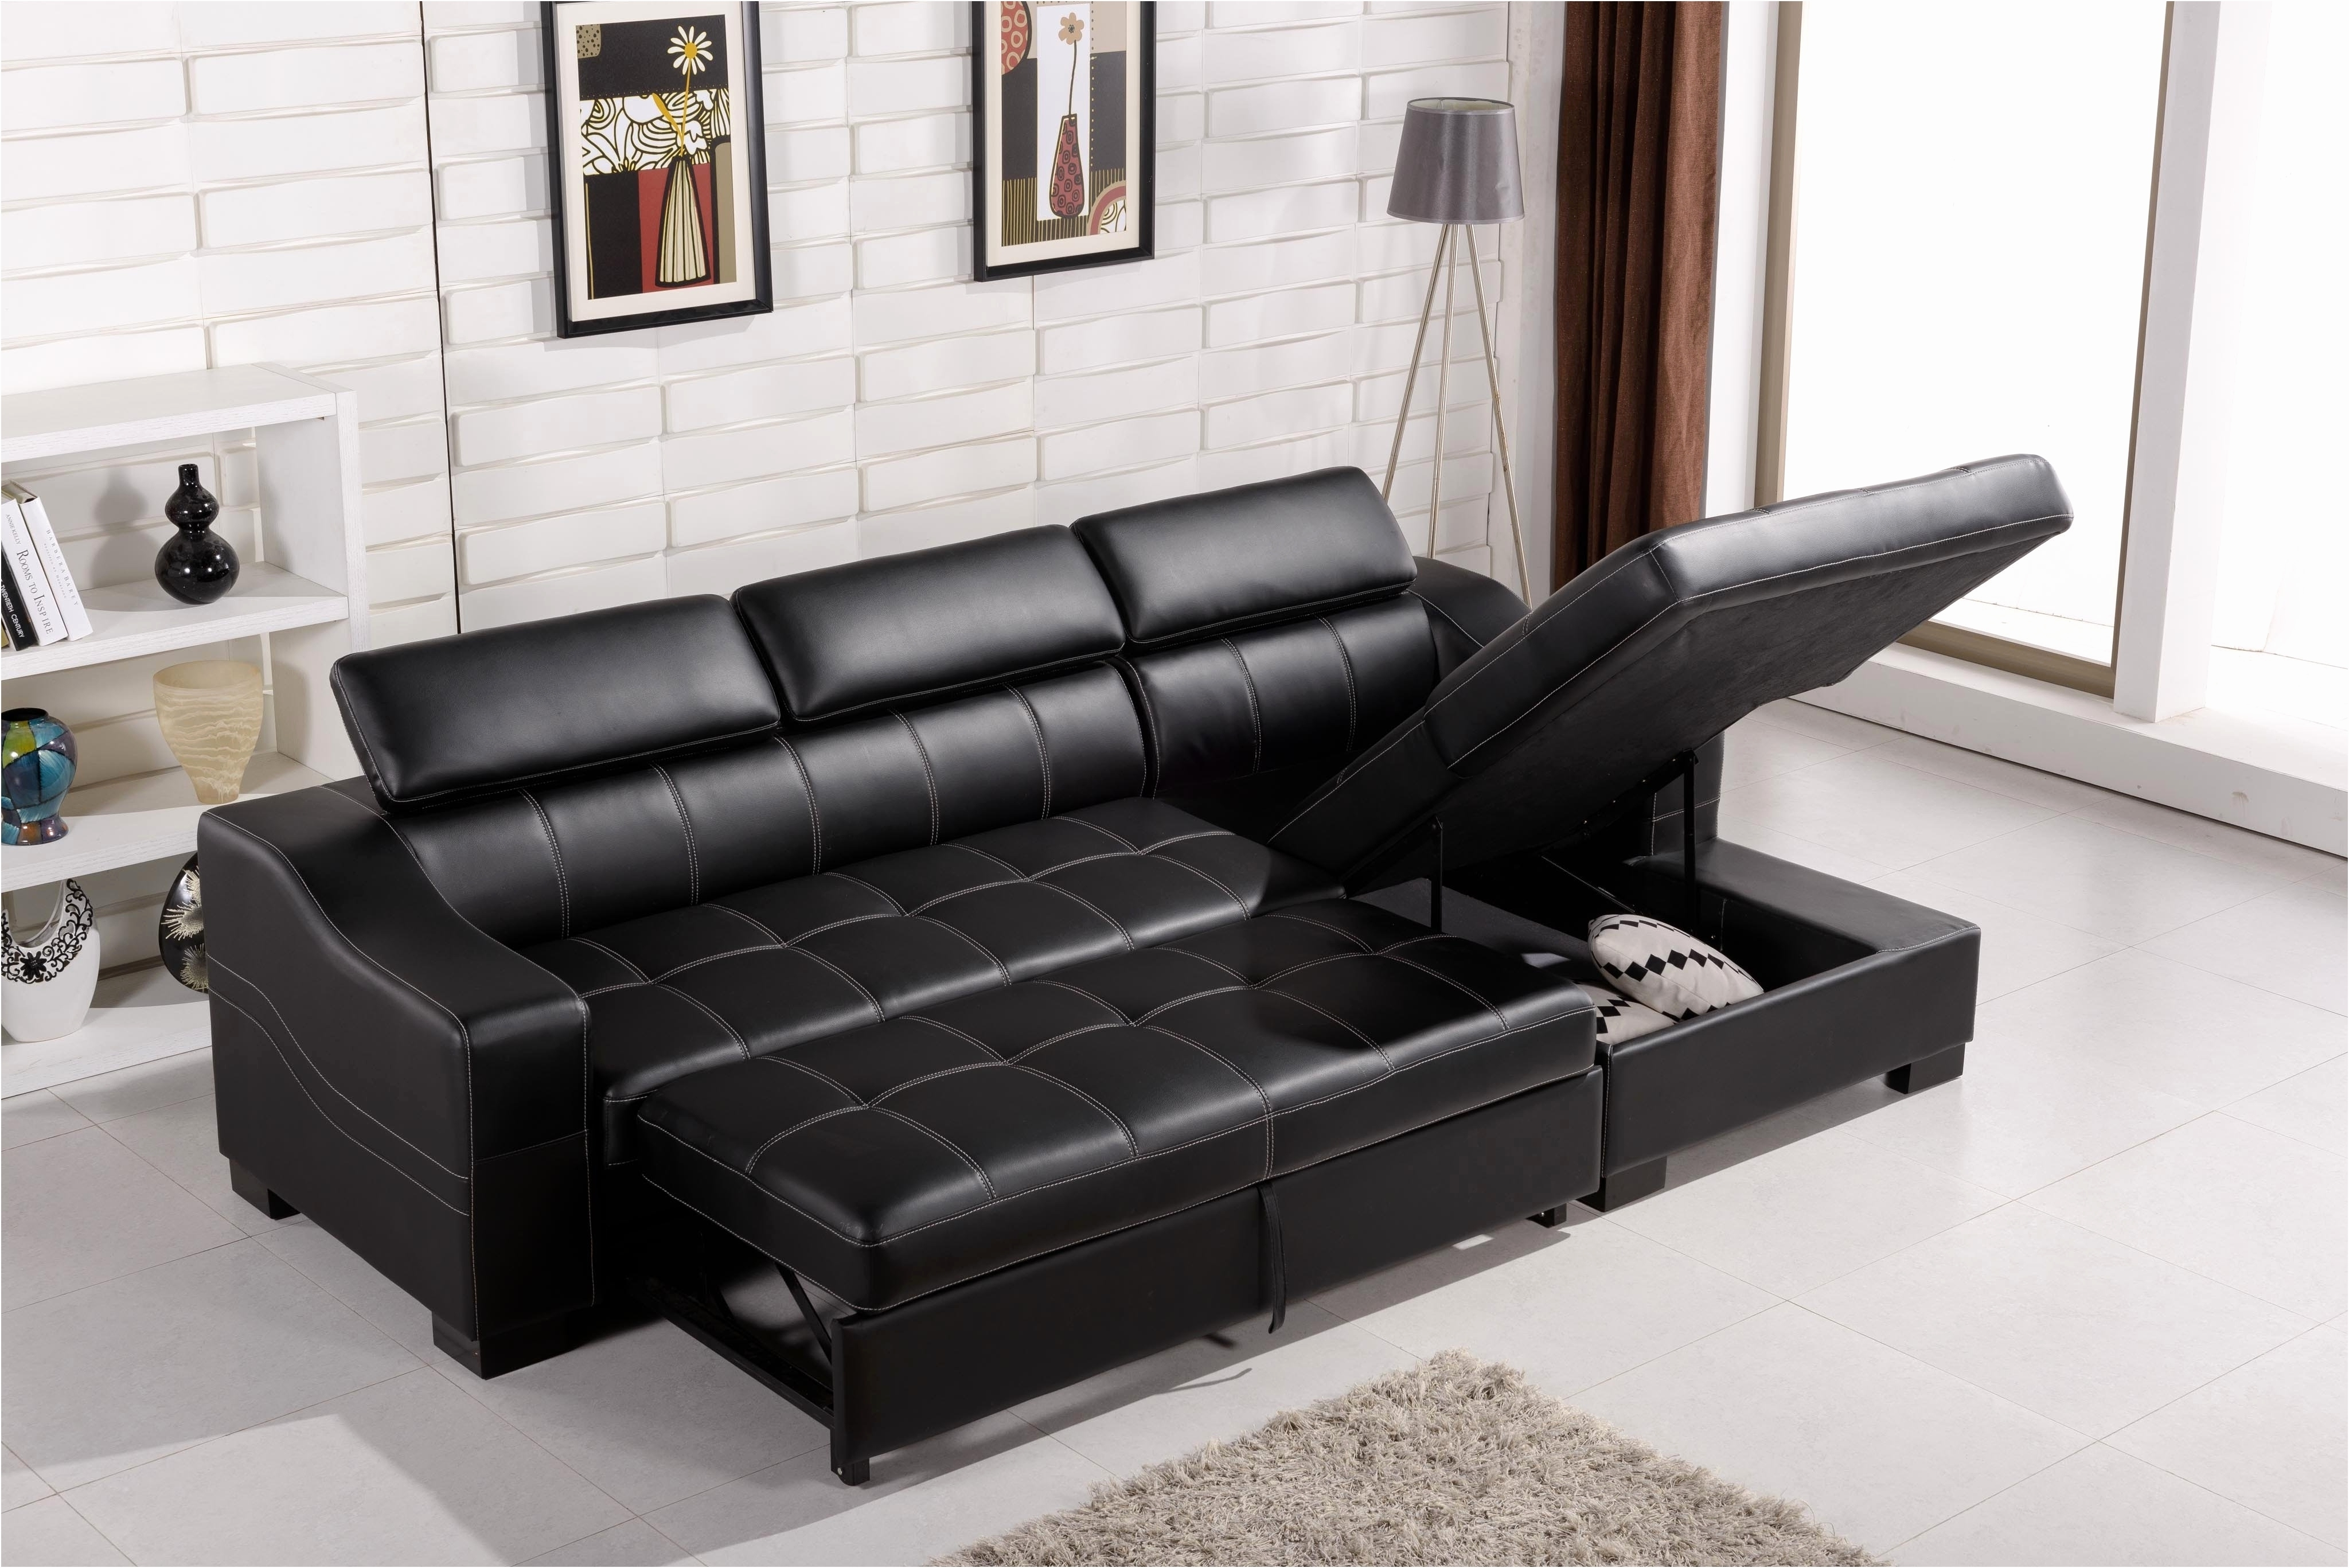 Sofa : Sofa Chairs Victoria Bc Sofa 7 Chair Company Sofa And intended for Well known Victoria Bc Sectional Sofas